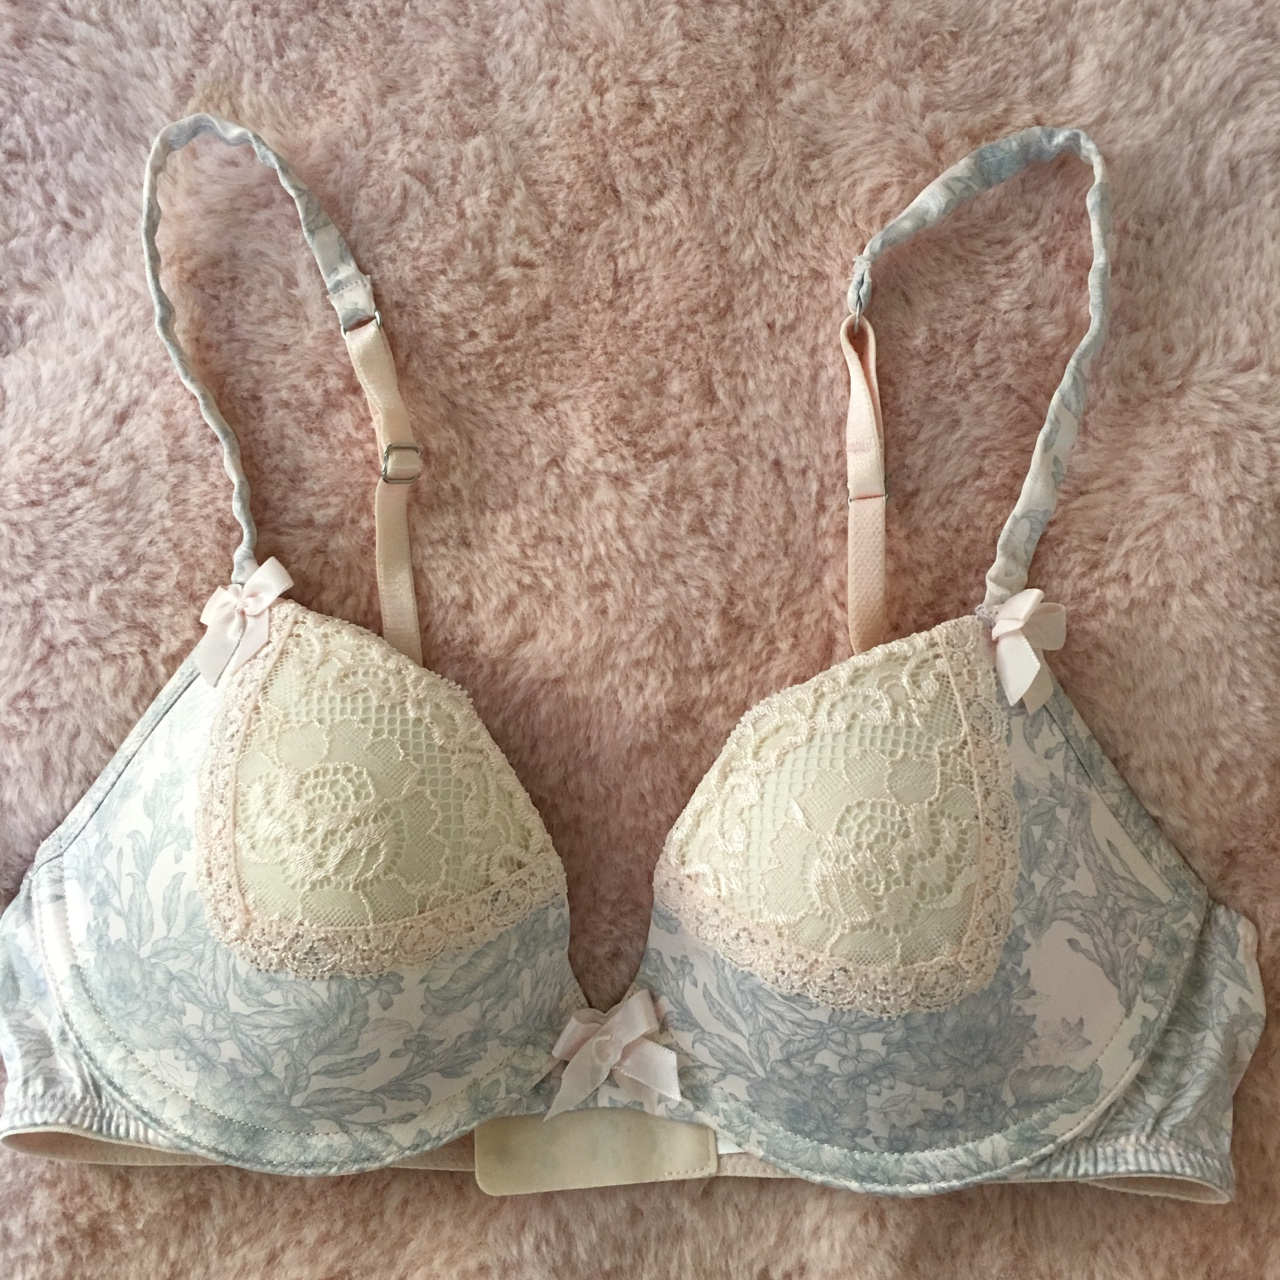 2000 pleasure state White label Bra UK 32bfr85b10b New with tags